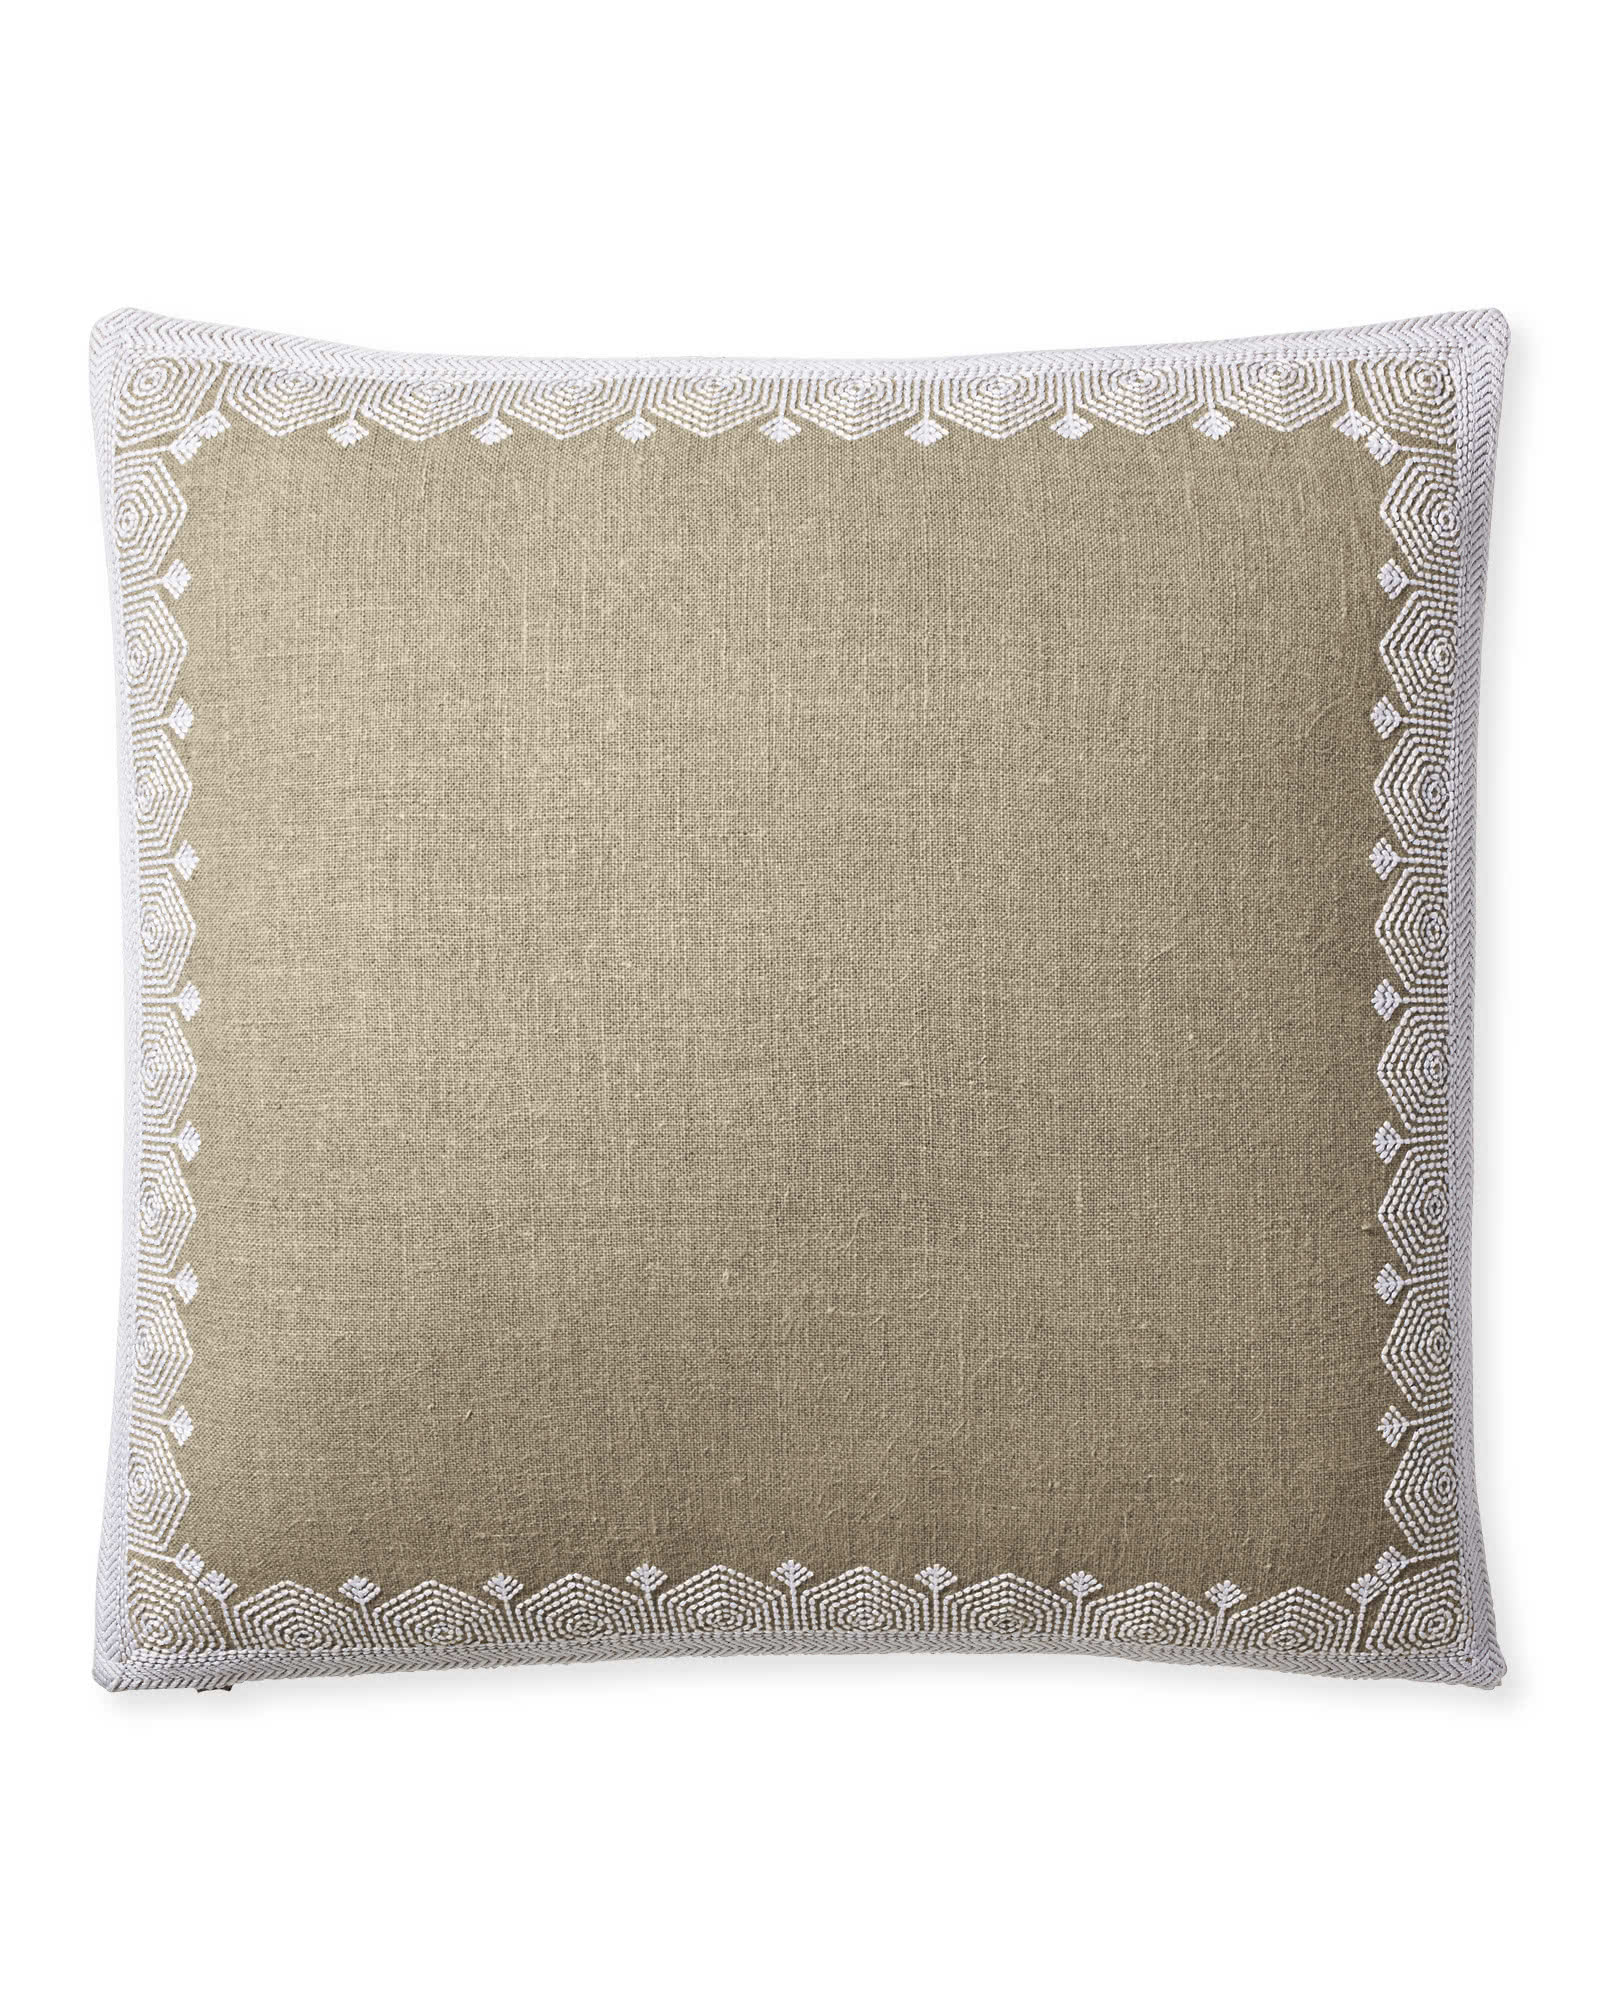 Olympia Pillow Cover, Flax